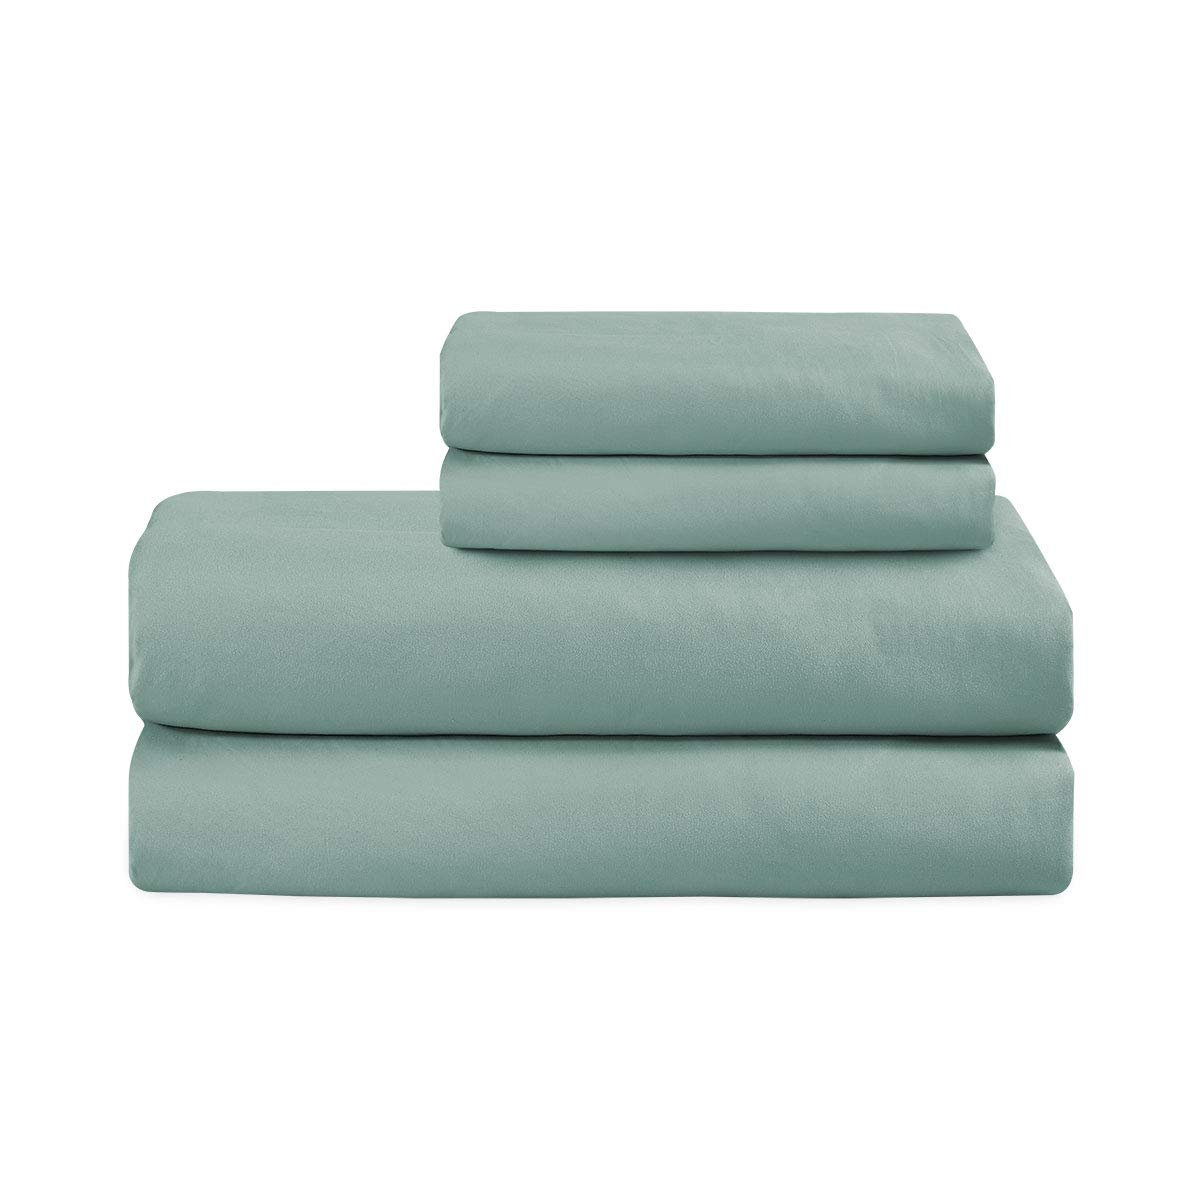 Basic Choice Bed Sheet Set - Brushed Microfiber 1800 Ultra Soft Bedding - Wrinkle, Fade, Stain Resistant - 4 Piece (Spa Blue, KING)